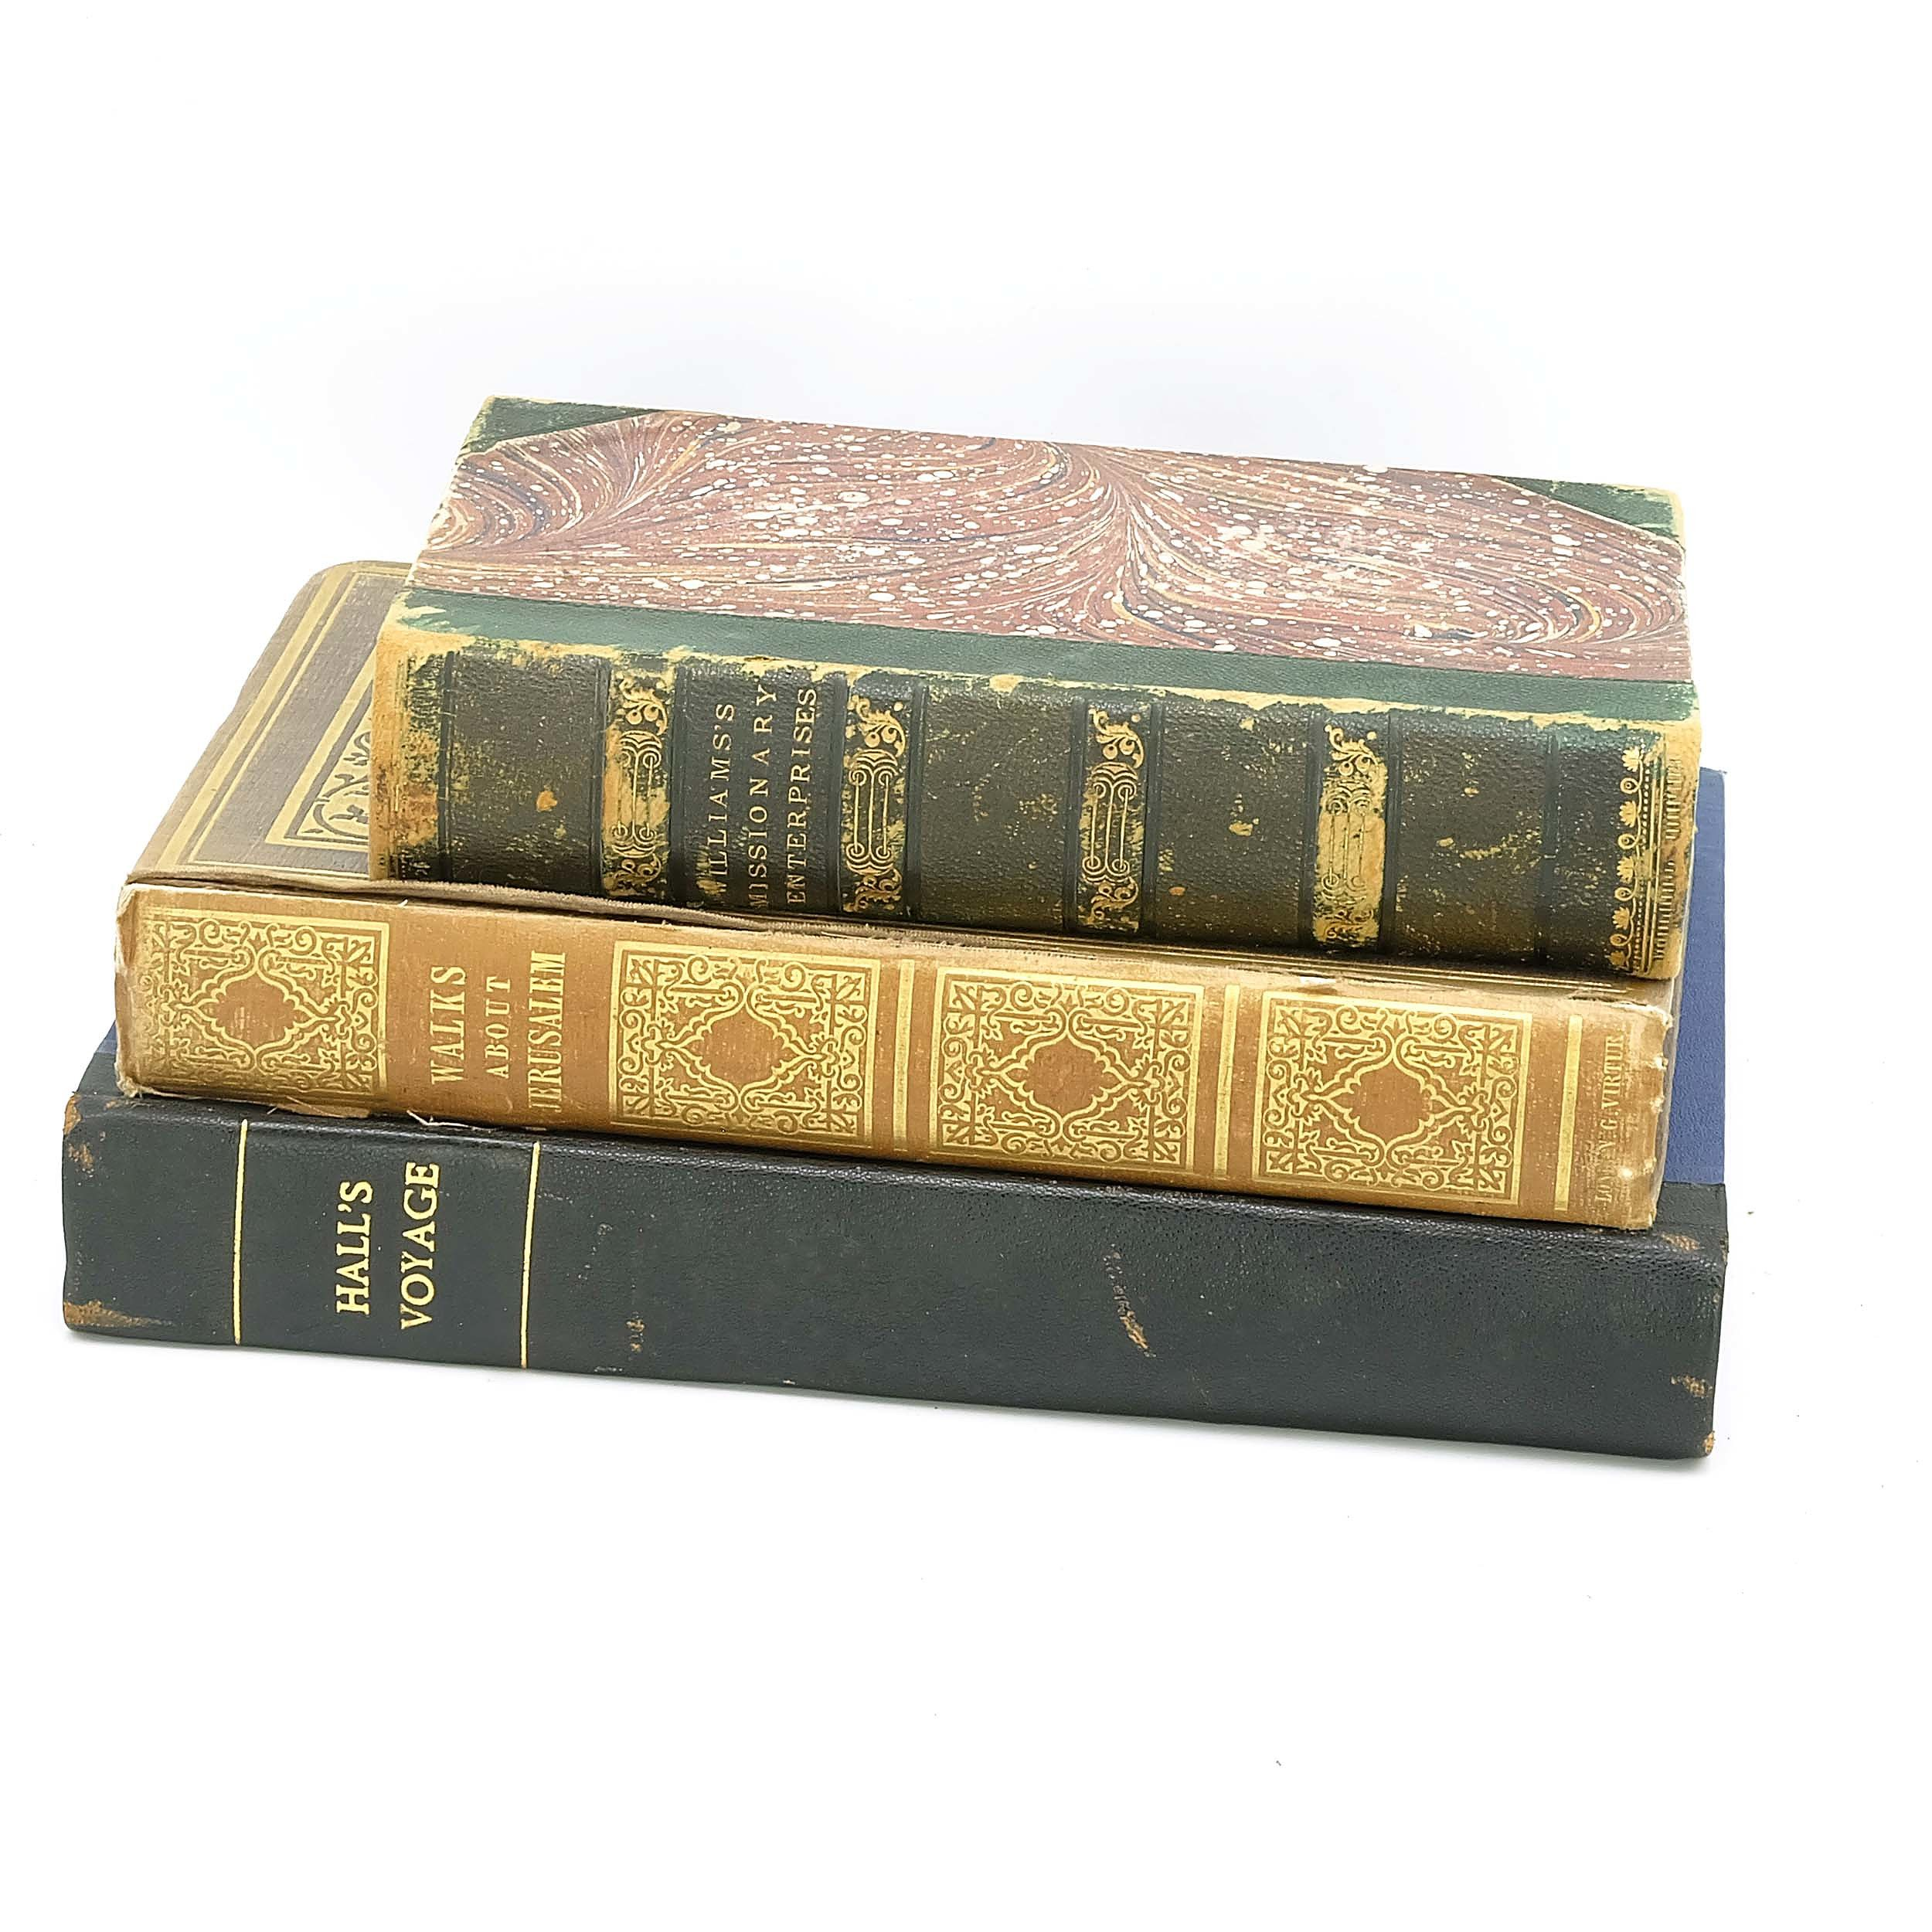 'Three Antiquarian Books Including An Account of A Voyage of Discovery By Captain Basil Hall 1818, Walks About Jerusalem 2nd Edition, and Williams Missionary Enterprises 1938'